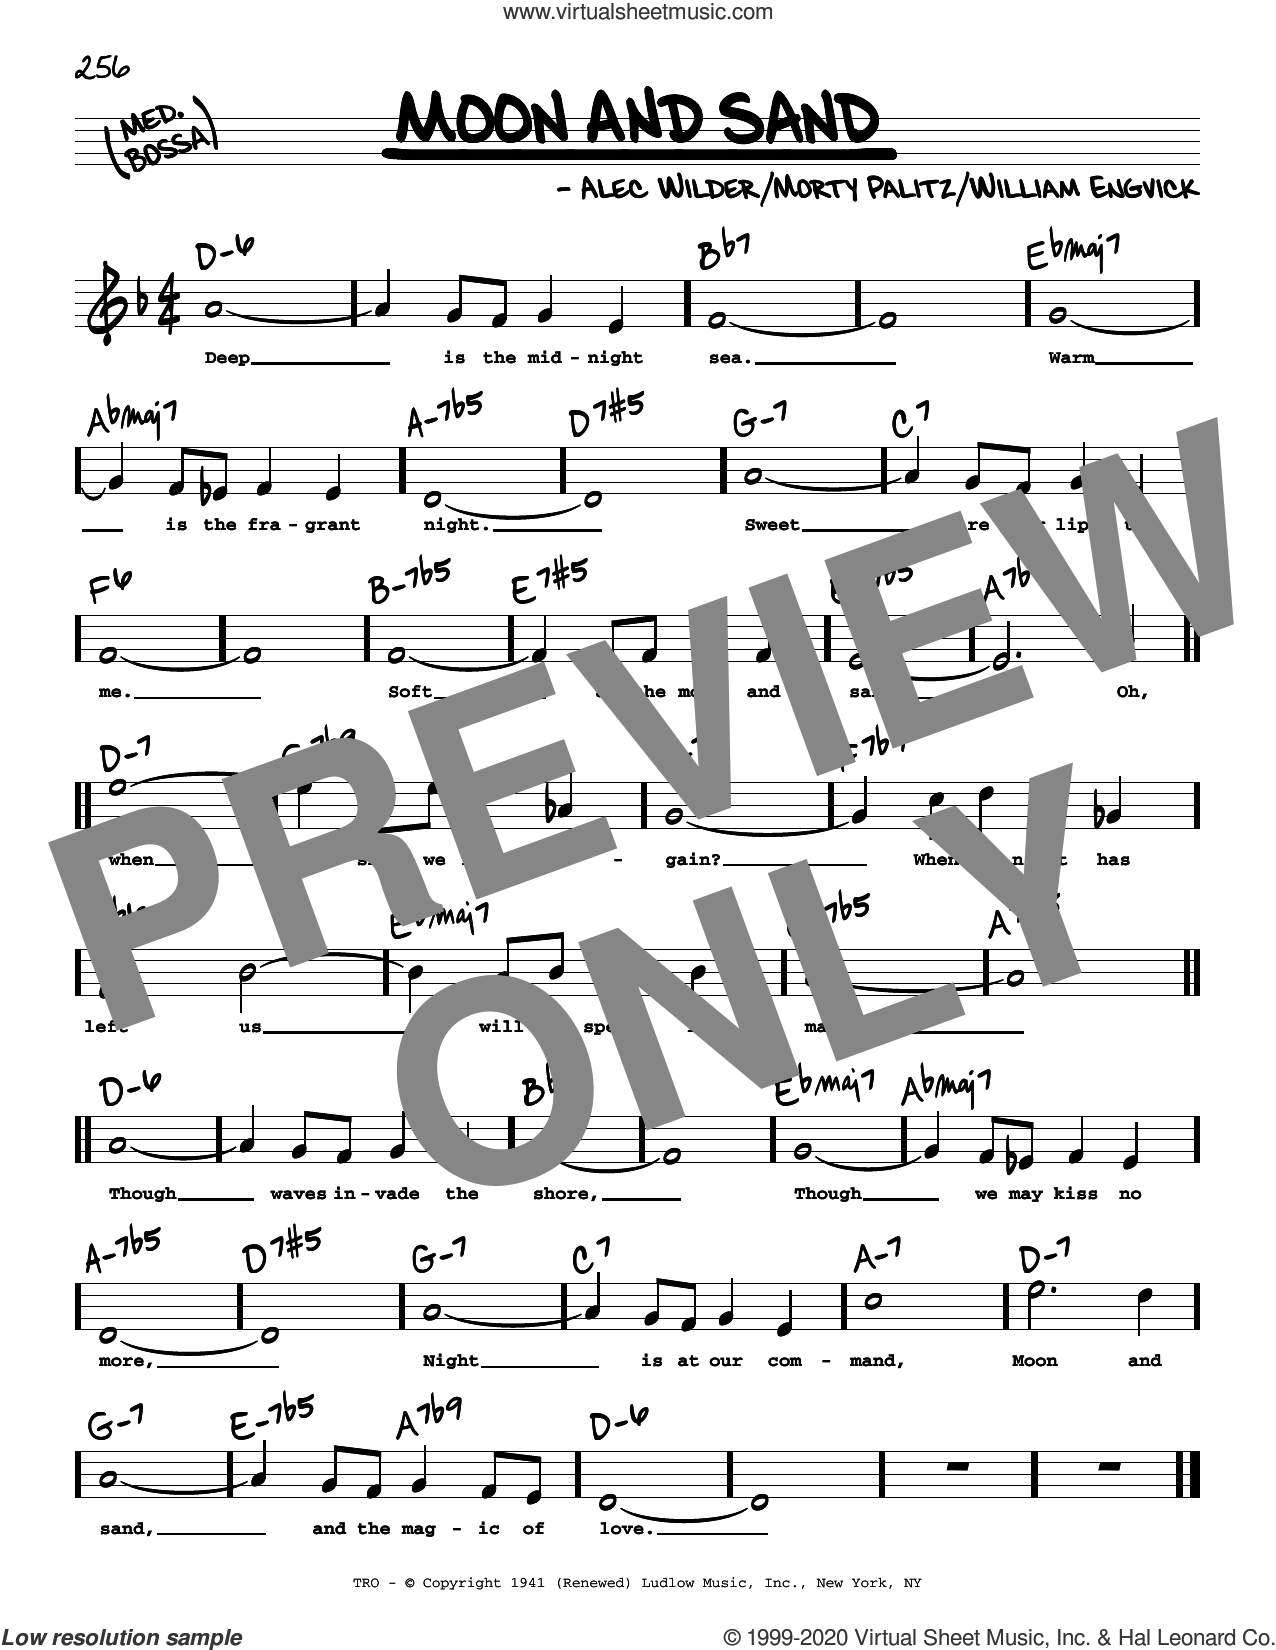 Moon And Sand (High Voice) sheet music for voice and other instruments (high voice) by Alec Wilder, Morty Palitz and William Engvick, intermediate skill level